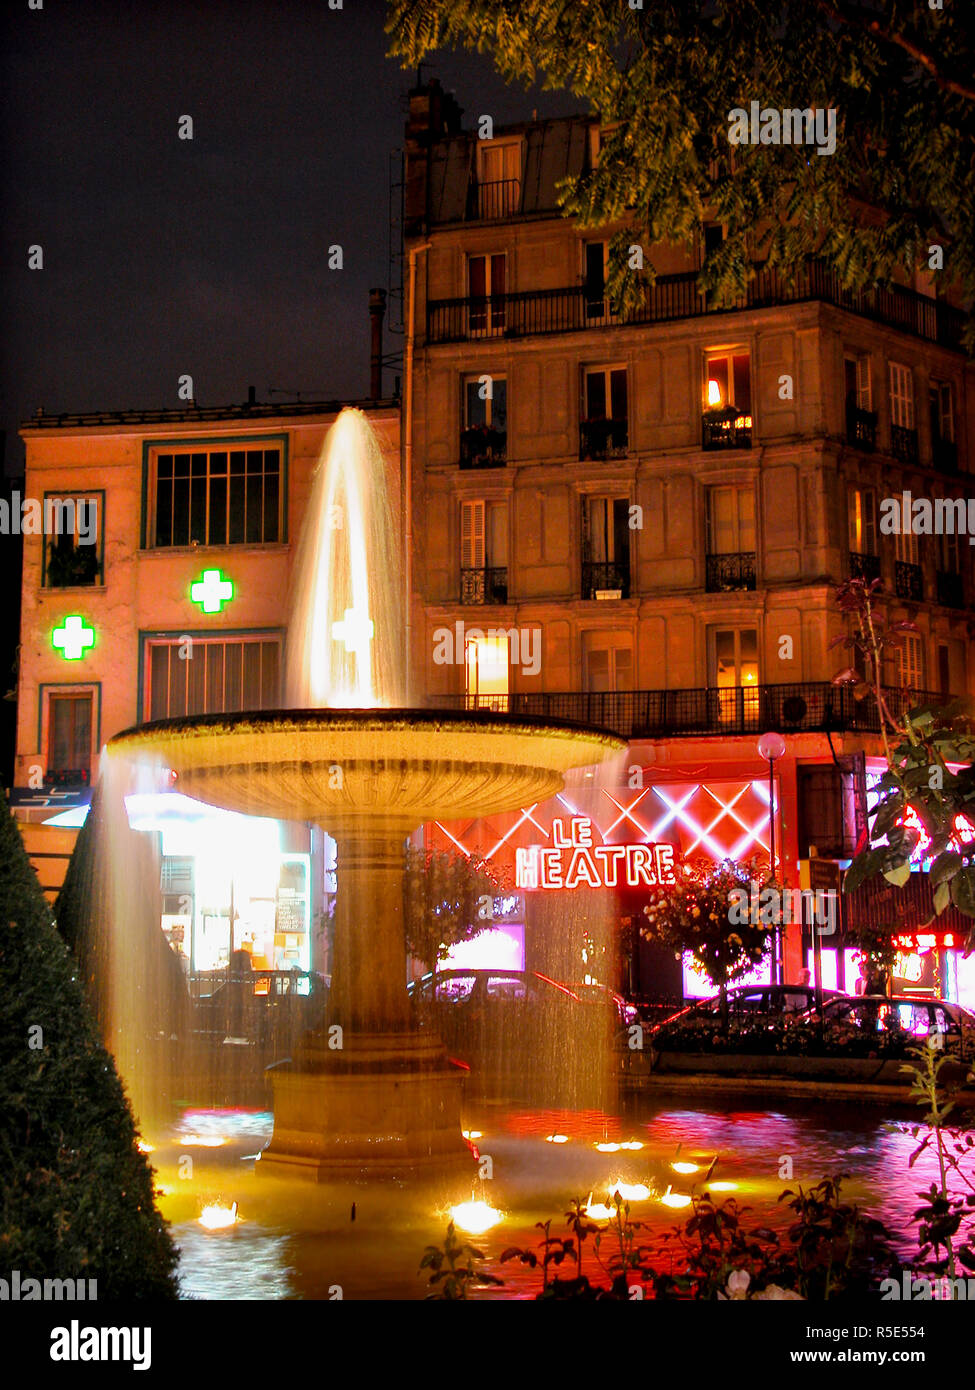 Place Pigalle, 9th arrondissement, Paris, France: fountain and revue theatre, illuminated at night - Stock Image